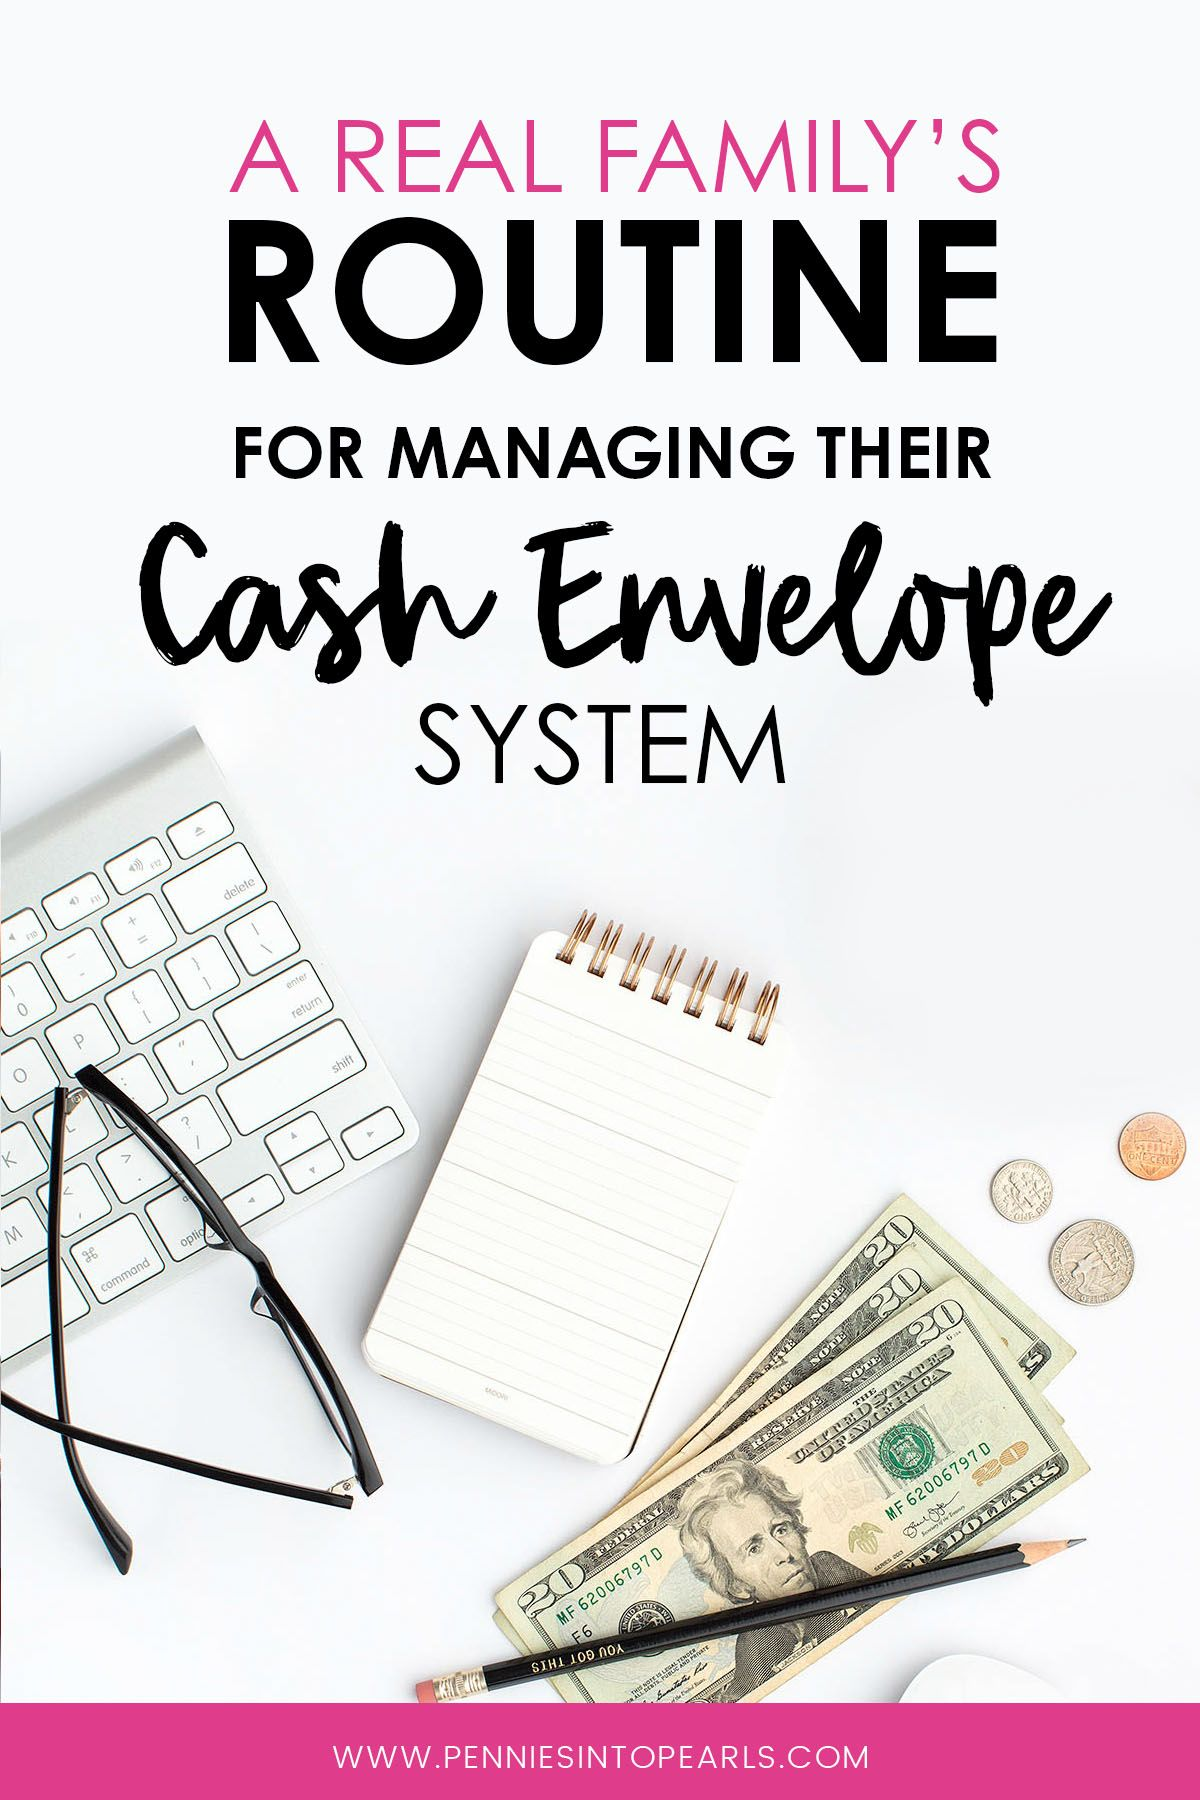 Our Cash Envelope System Routine